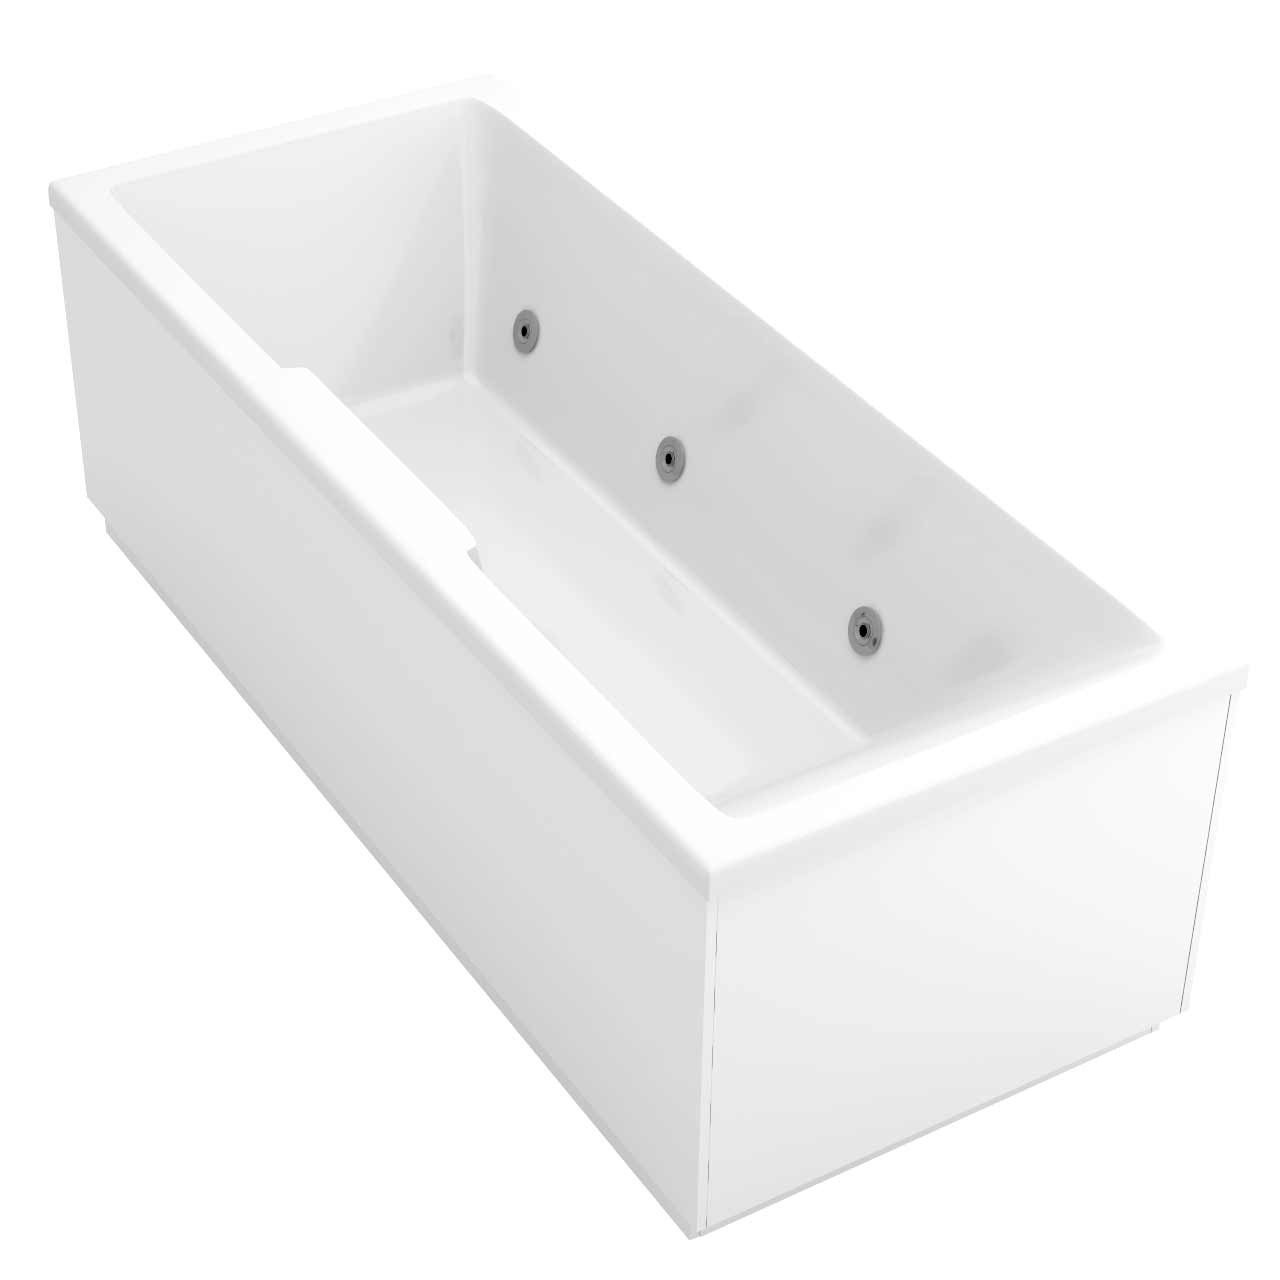 Legend Right Hand 6 Jet Chrome Flat Jet Whirlpool Bath 1700x700mm